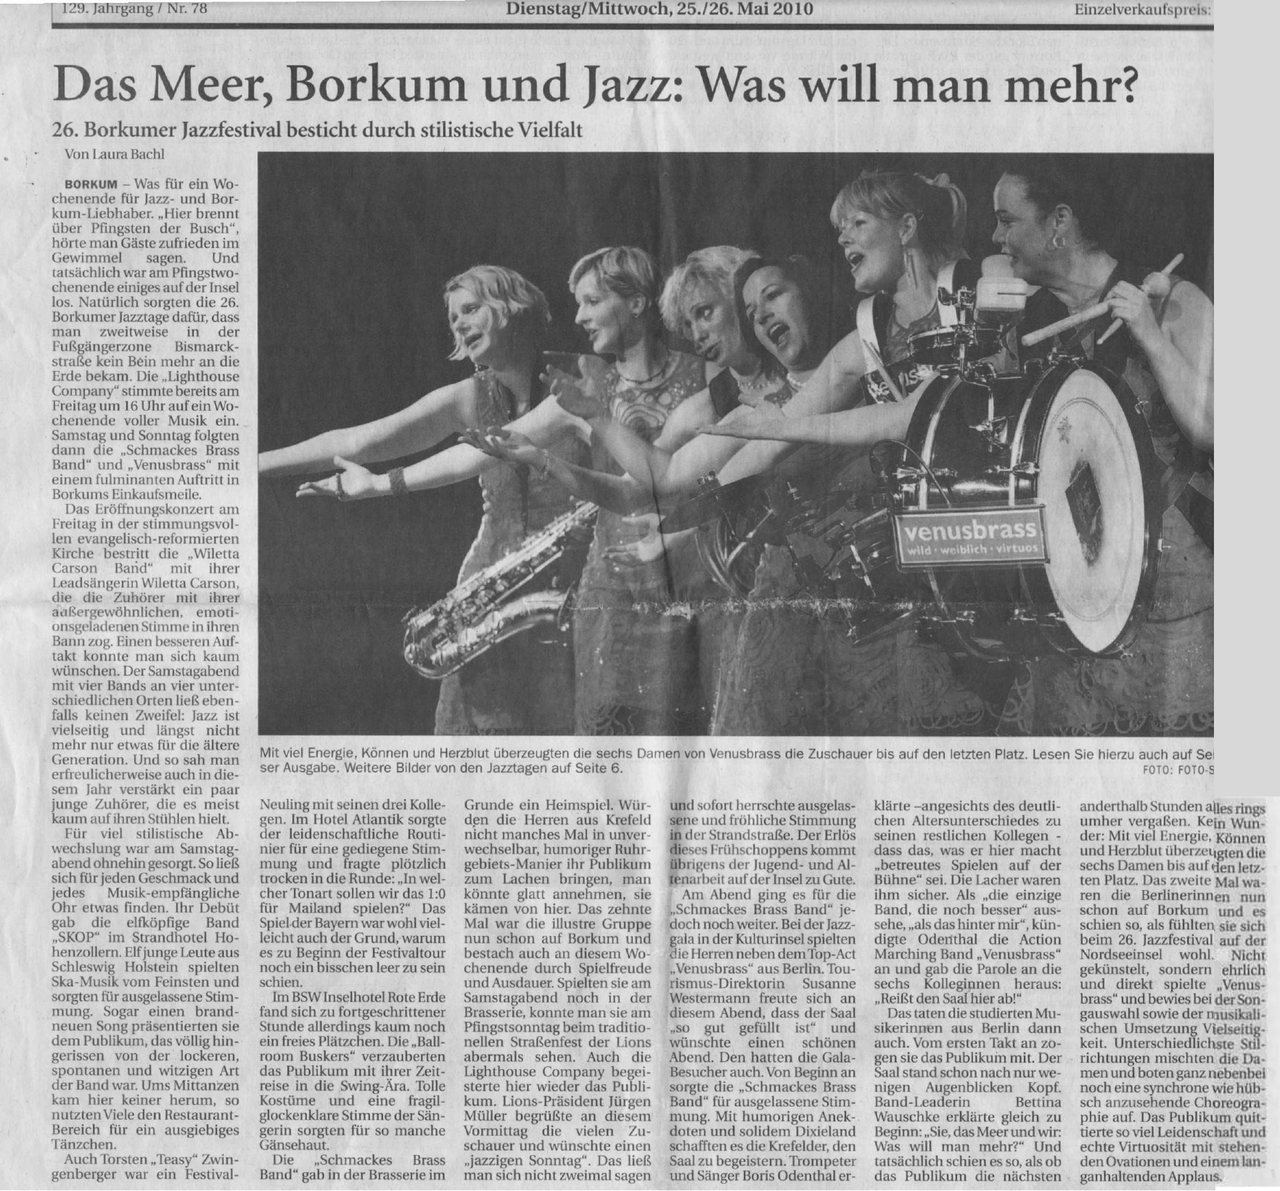 Borkum newspaper reviews the 26. Jazz Festival on the island of Borkum at the northern end of Germany, where Willetta and her band - vocals, bass, drums and keyboard - performed the opening ceremony